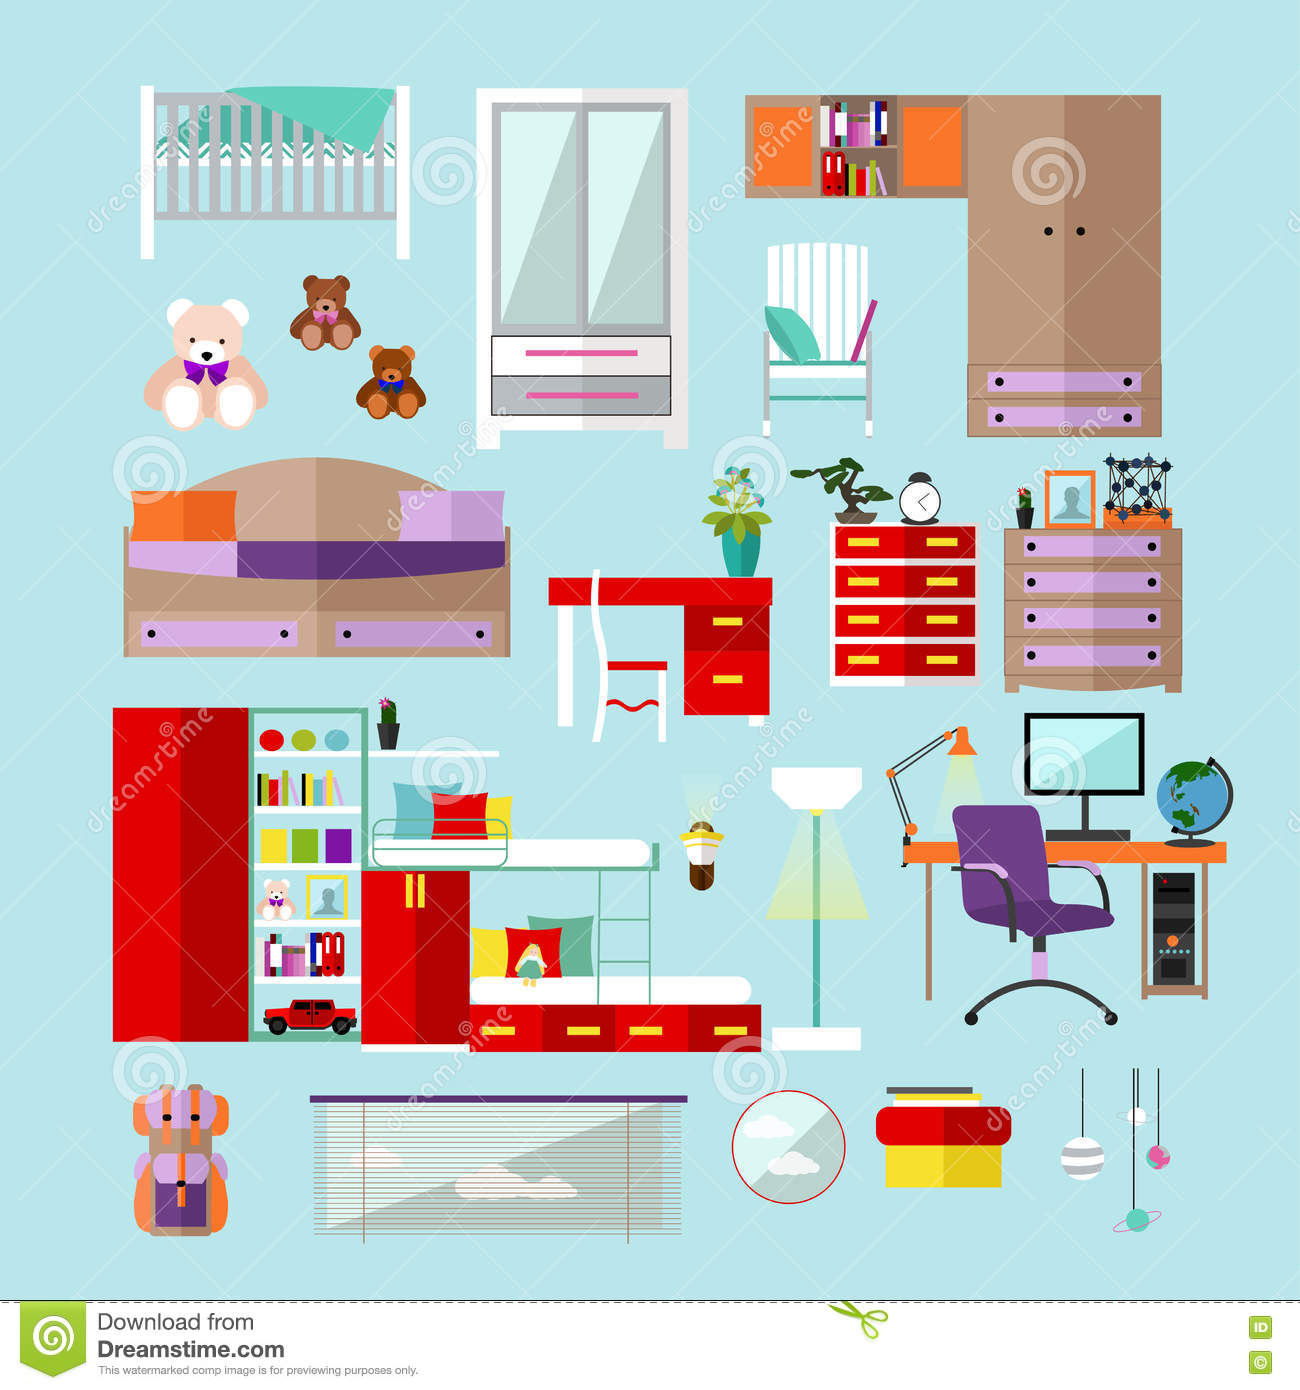 Oggetti Camera Da Letto Bedroom Interior Flat Vector Illustration Vector